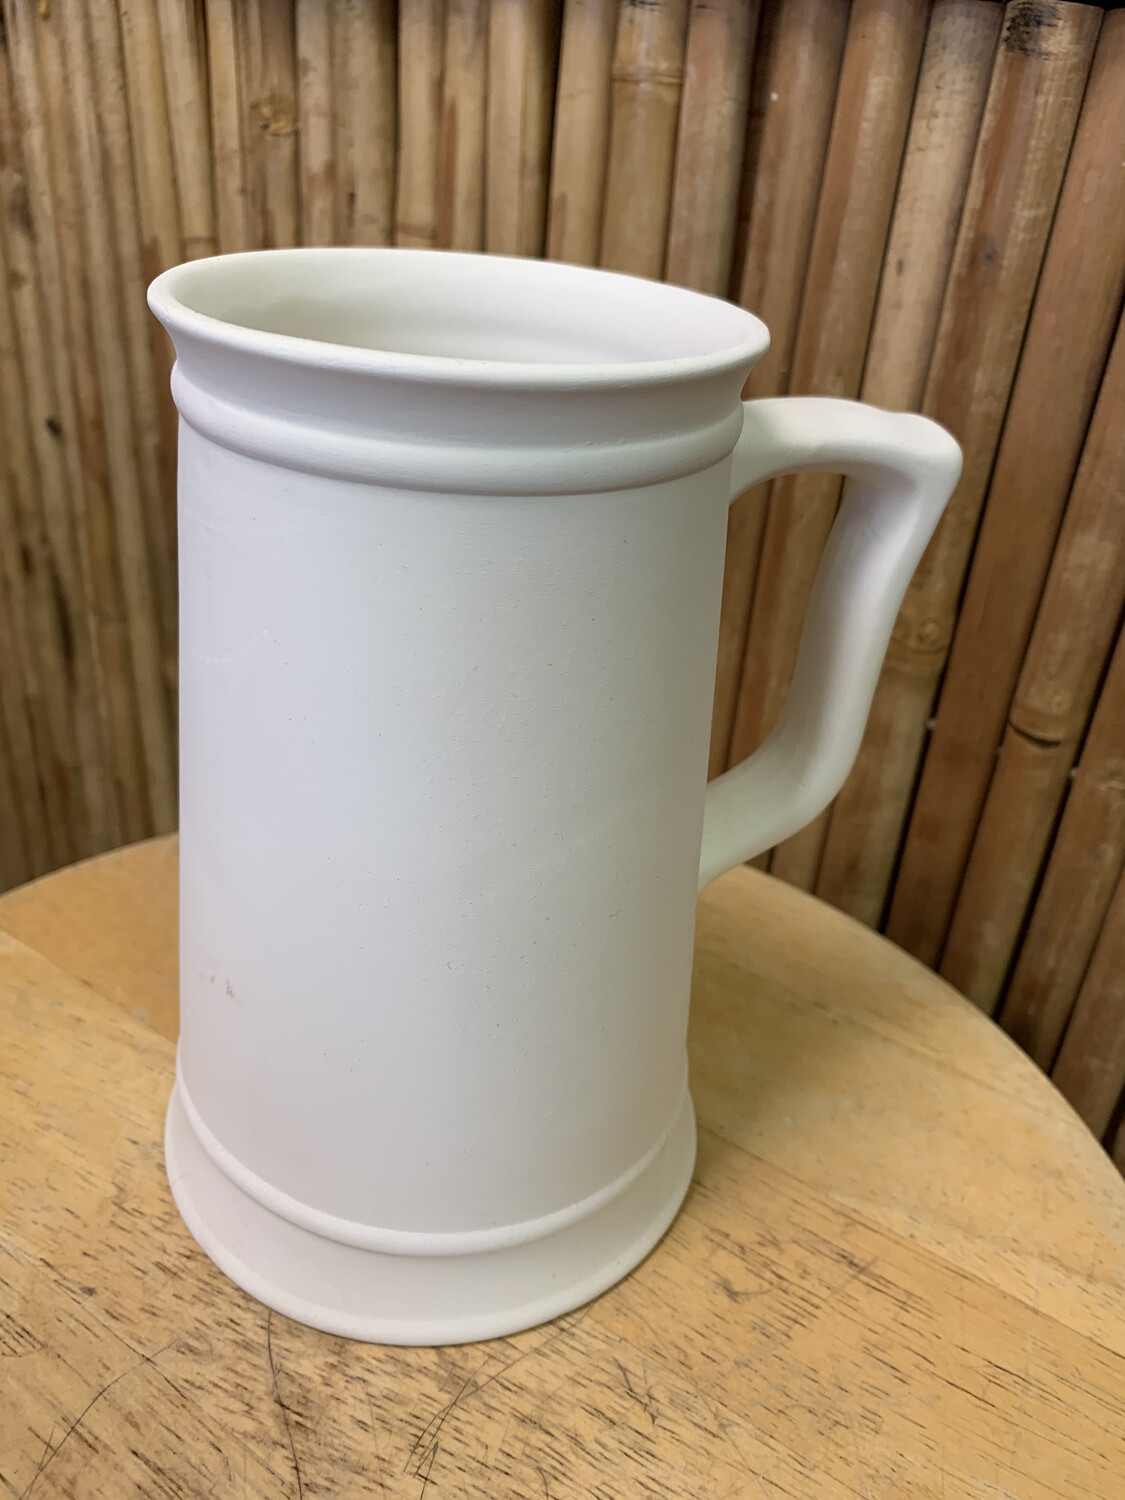 Paint Your Own Pottery - Ceramic   Stein Mug Painting Kit